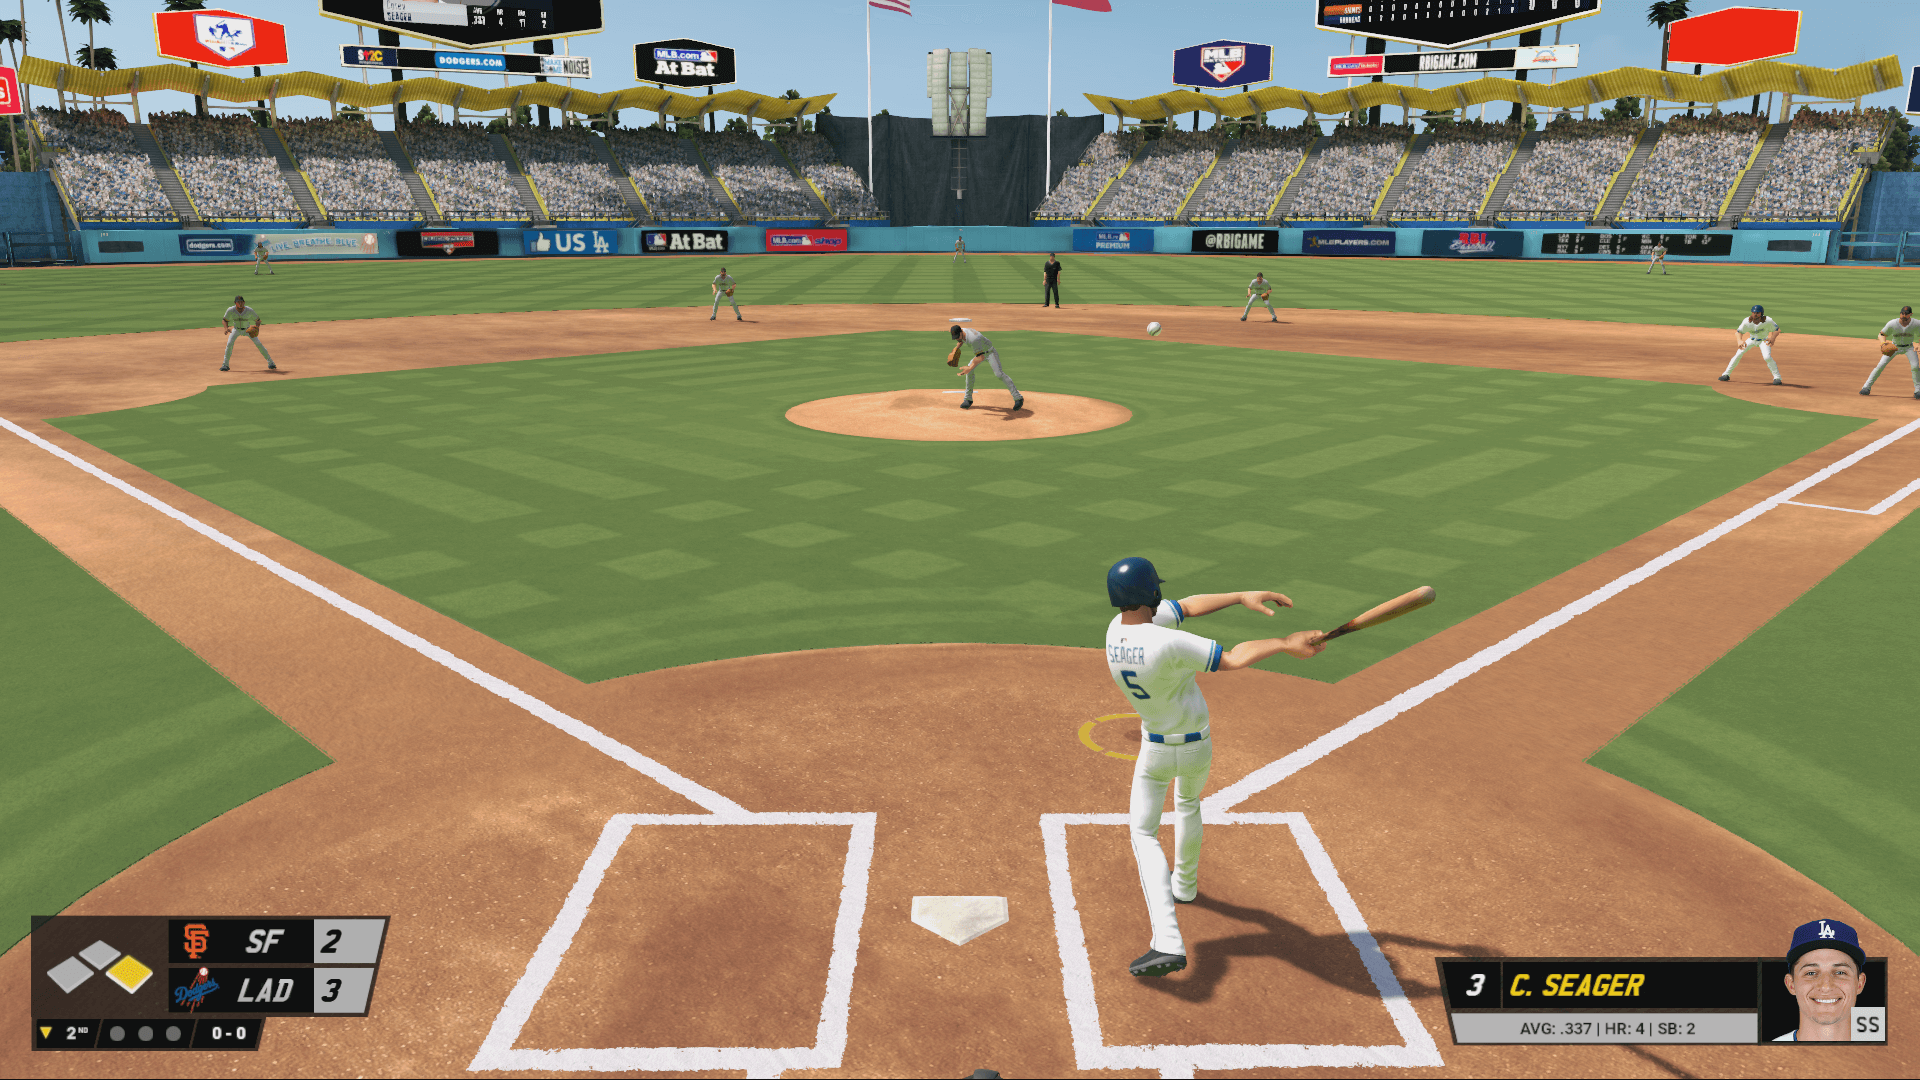 R.B.I. Baseball 2017 Reveals Dodgers' Seager As Cover Athlete